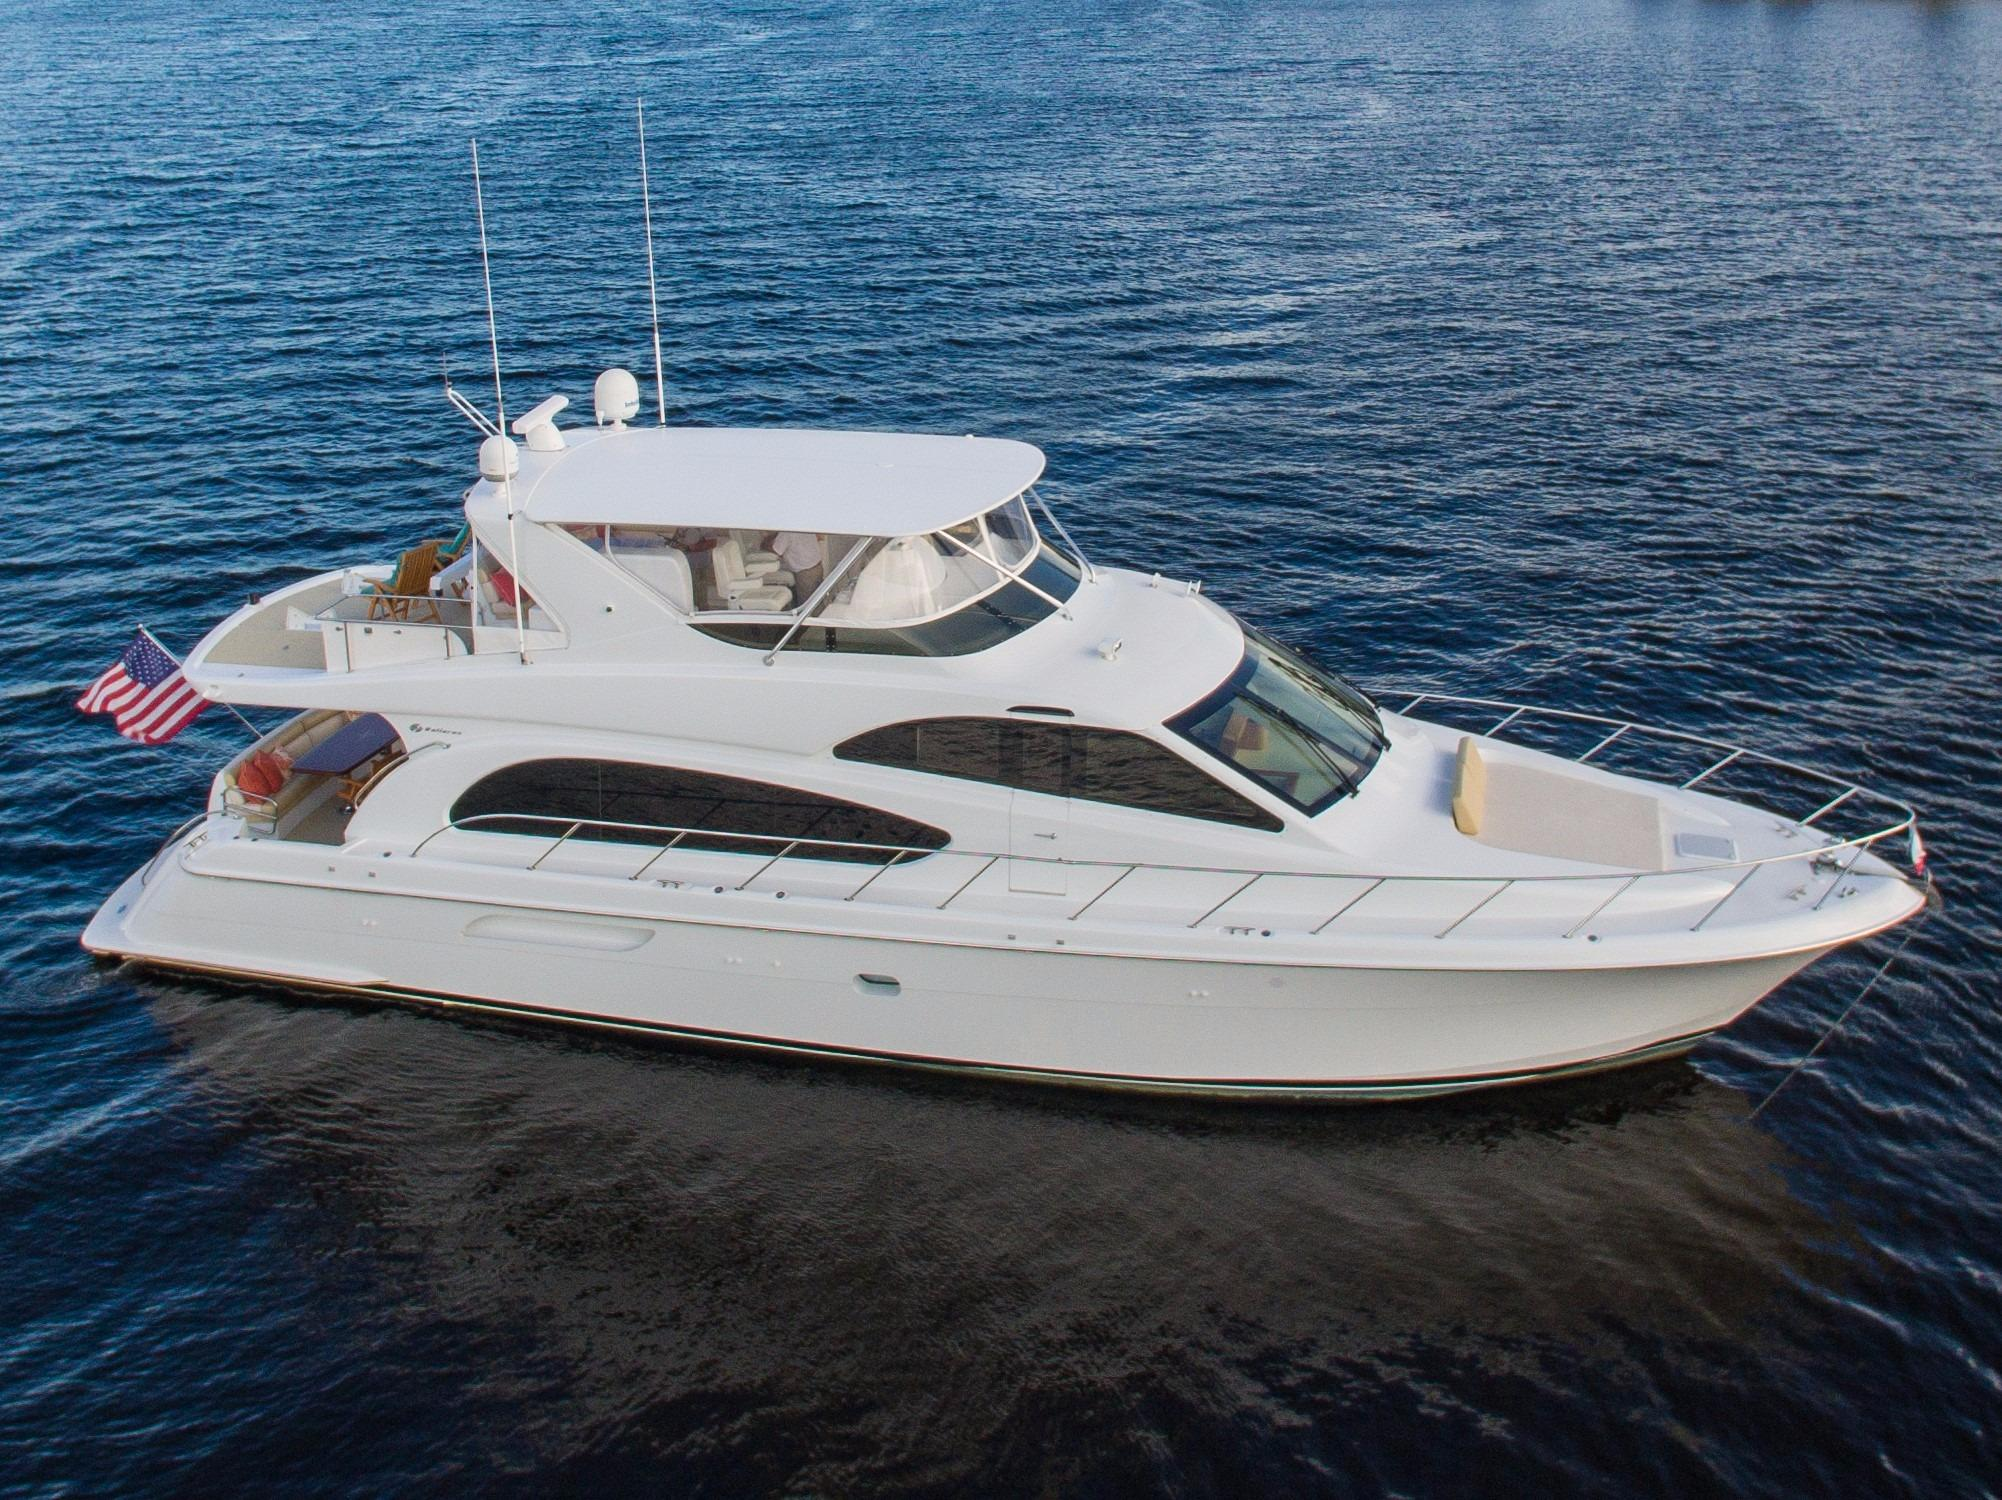 Used hatteras yachts for sale from 60 to 70 feet for Hatteras motor yacht for sale